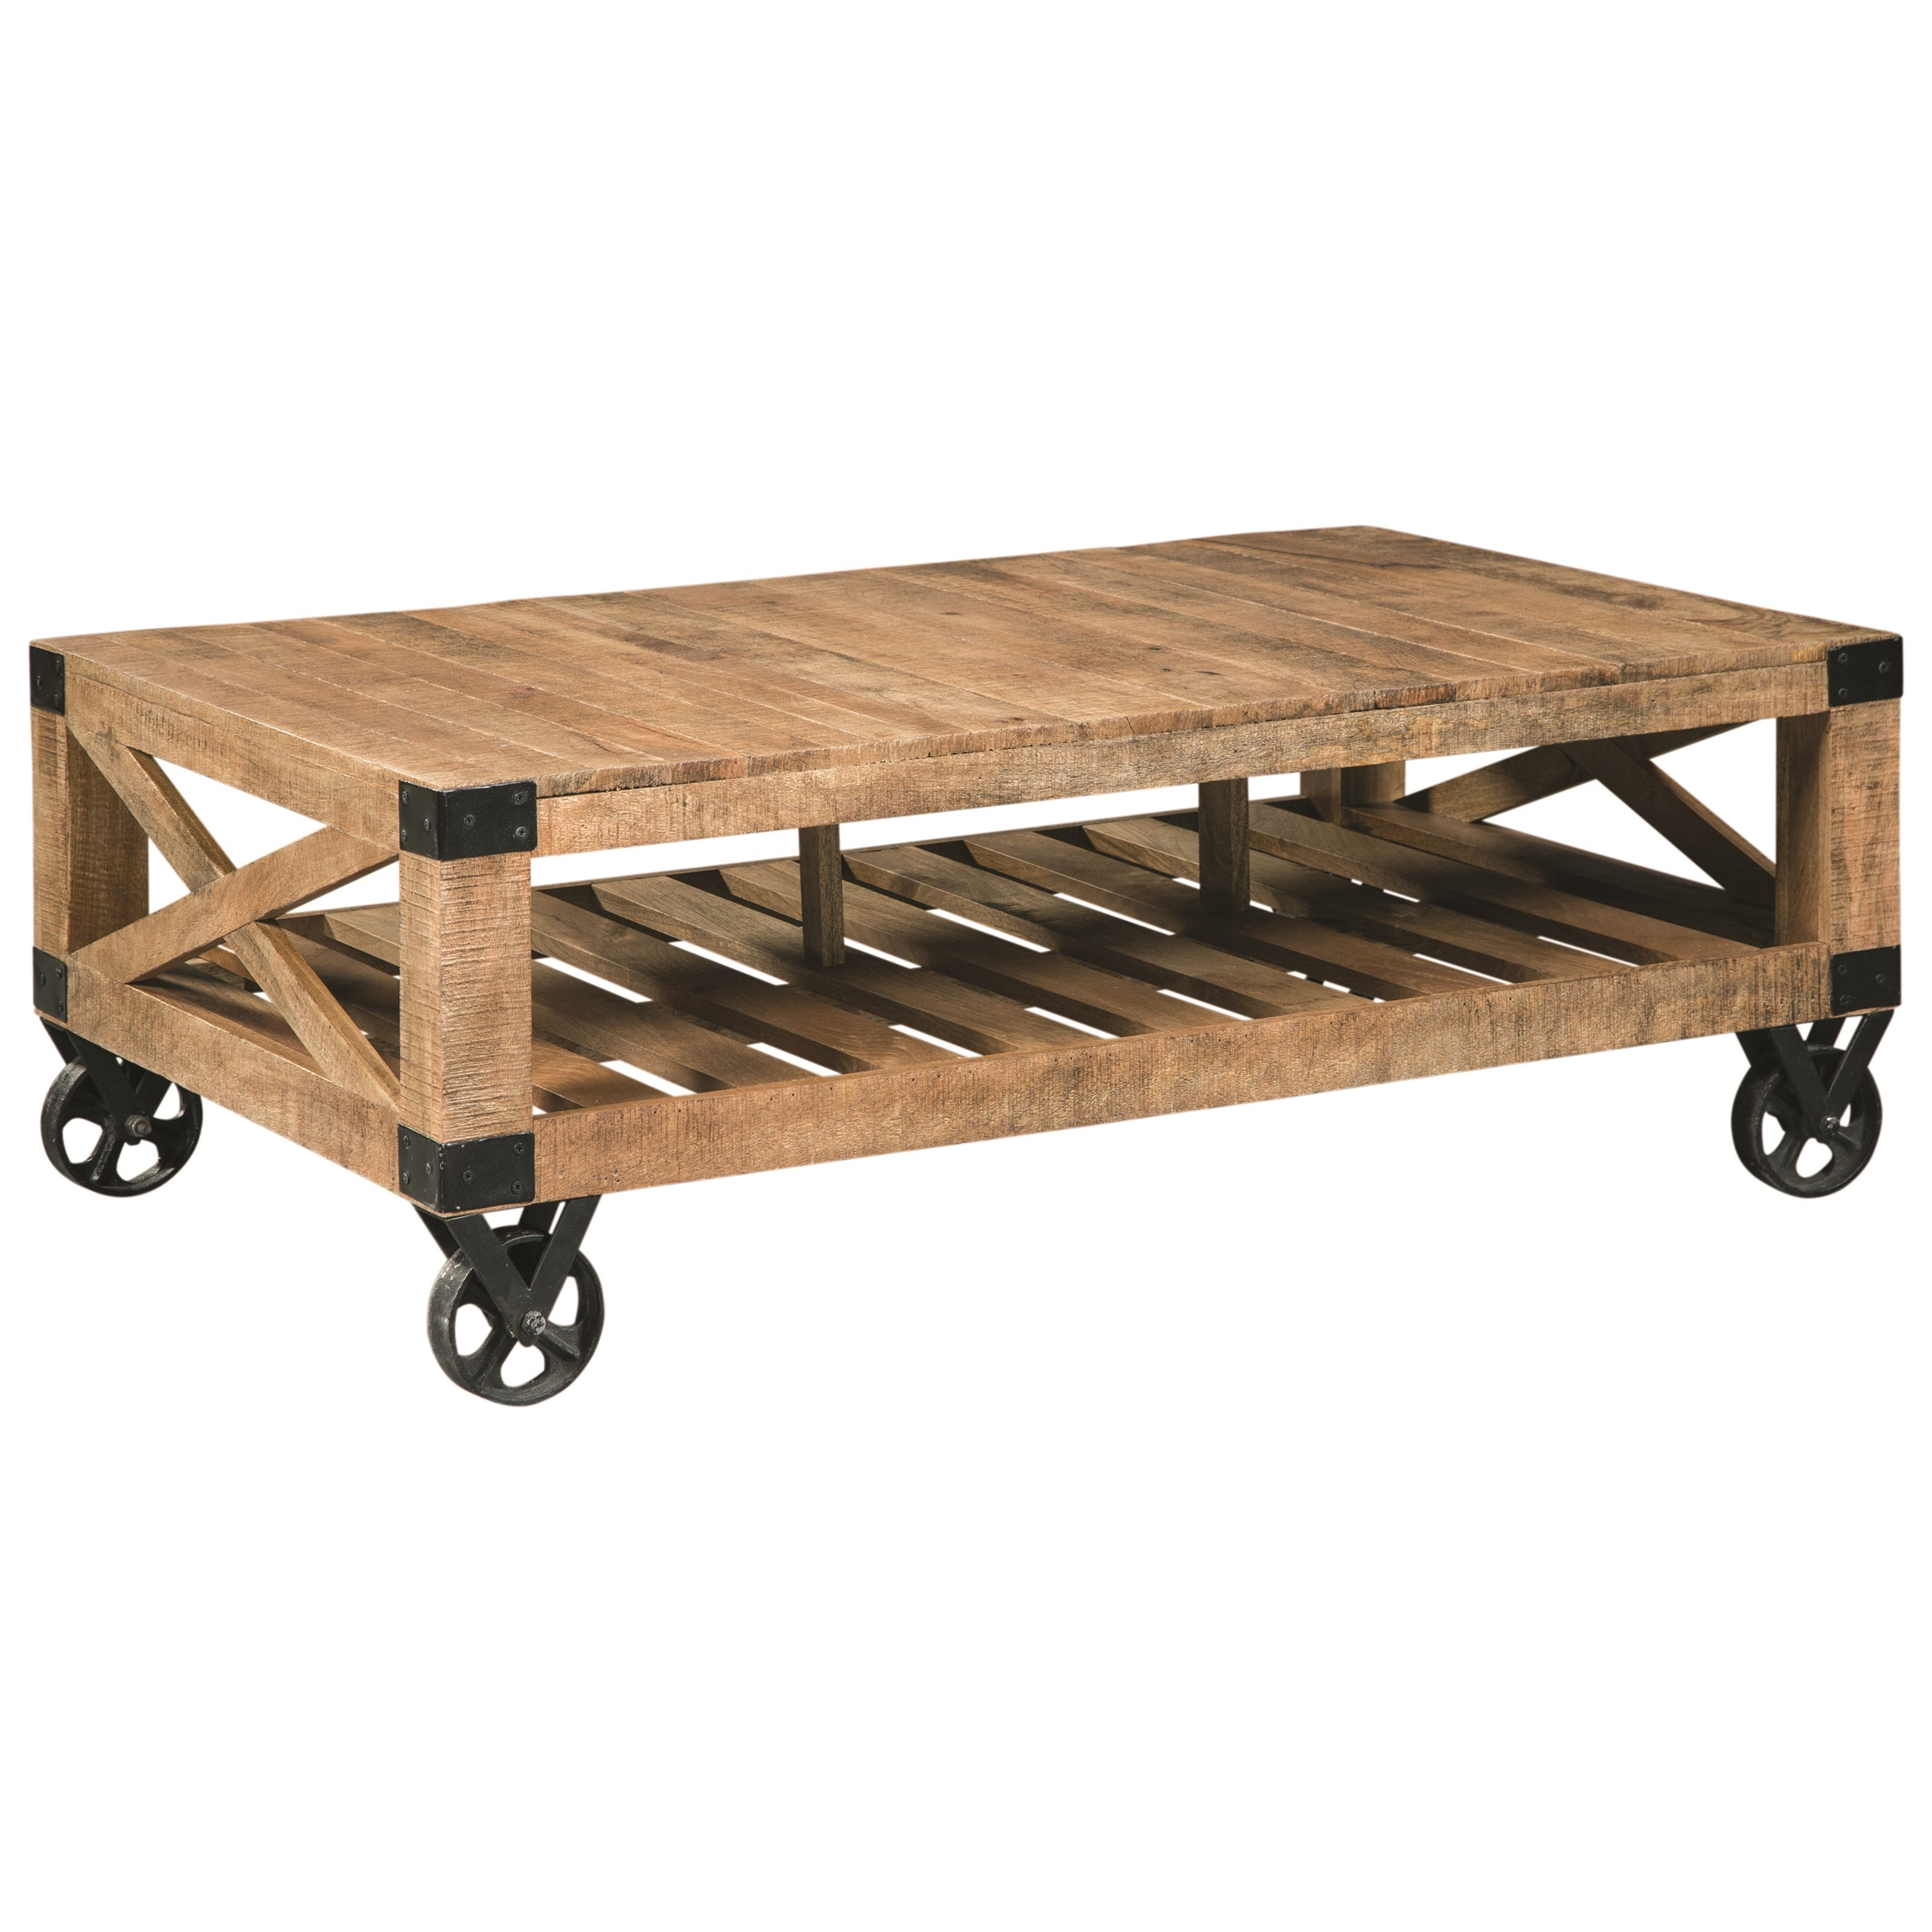 Industrial Coffee Table with Casters by Scott Living